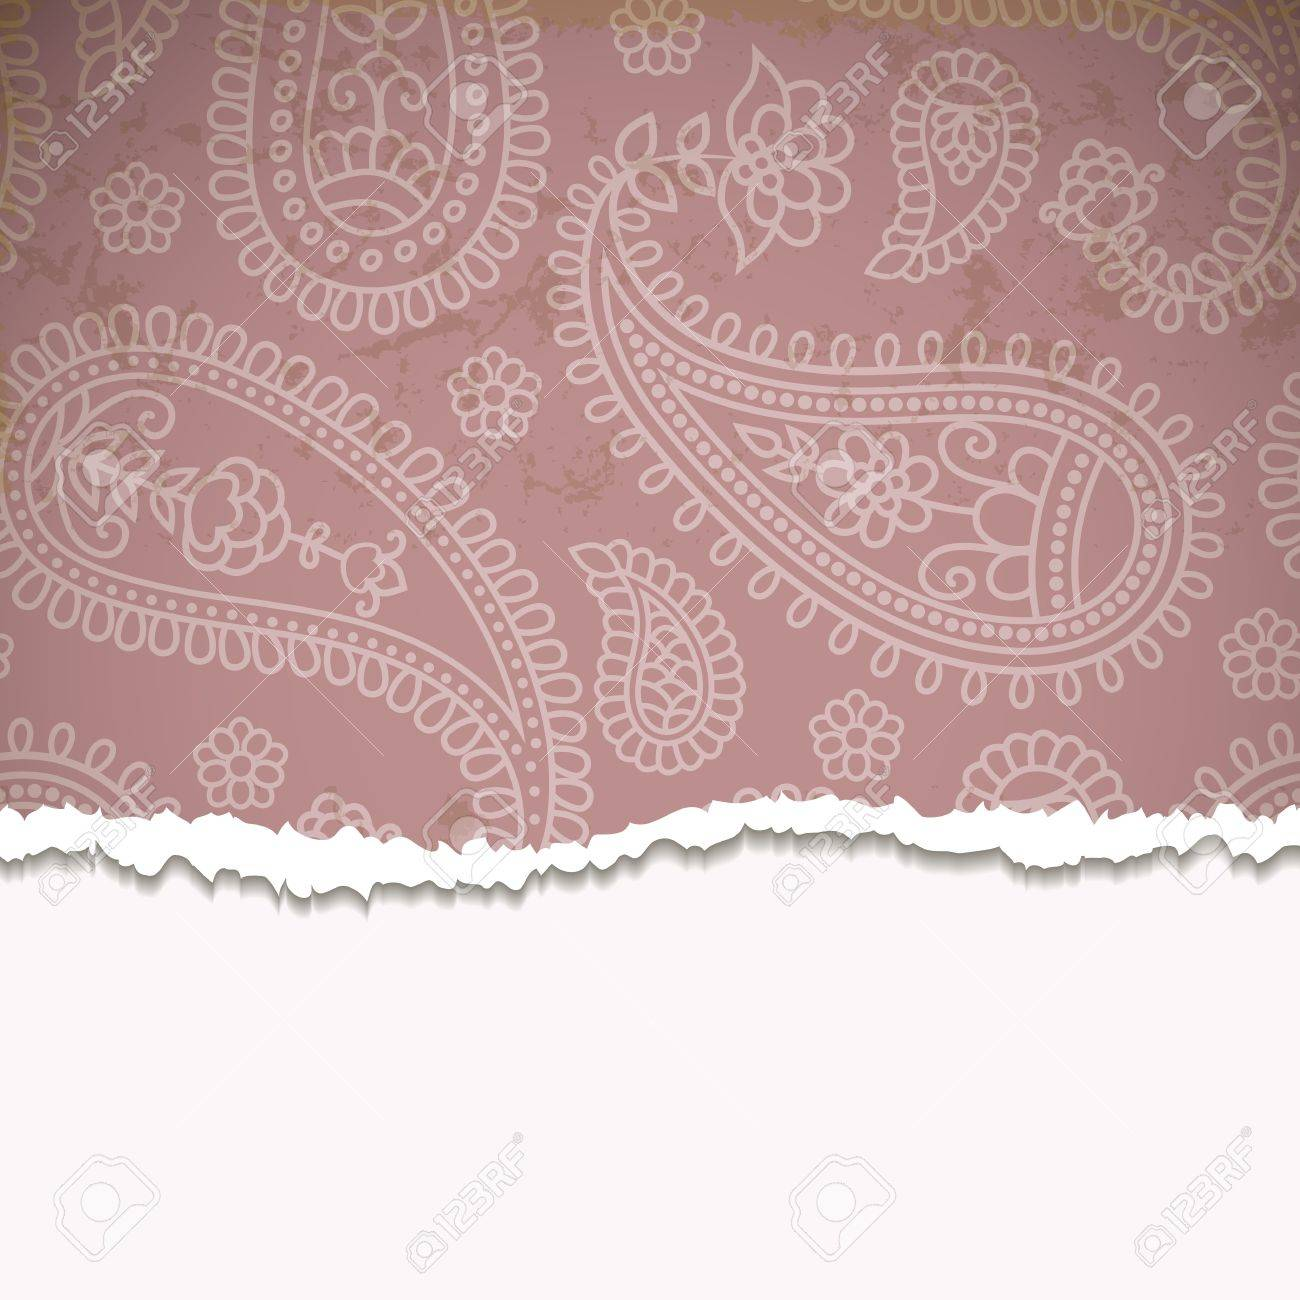 Torn paper with a paisley pattern. Retro background. Stock Vector - 14027780